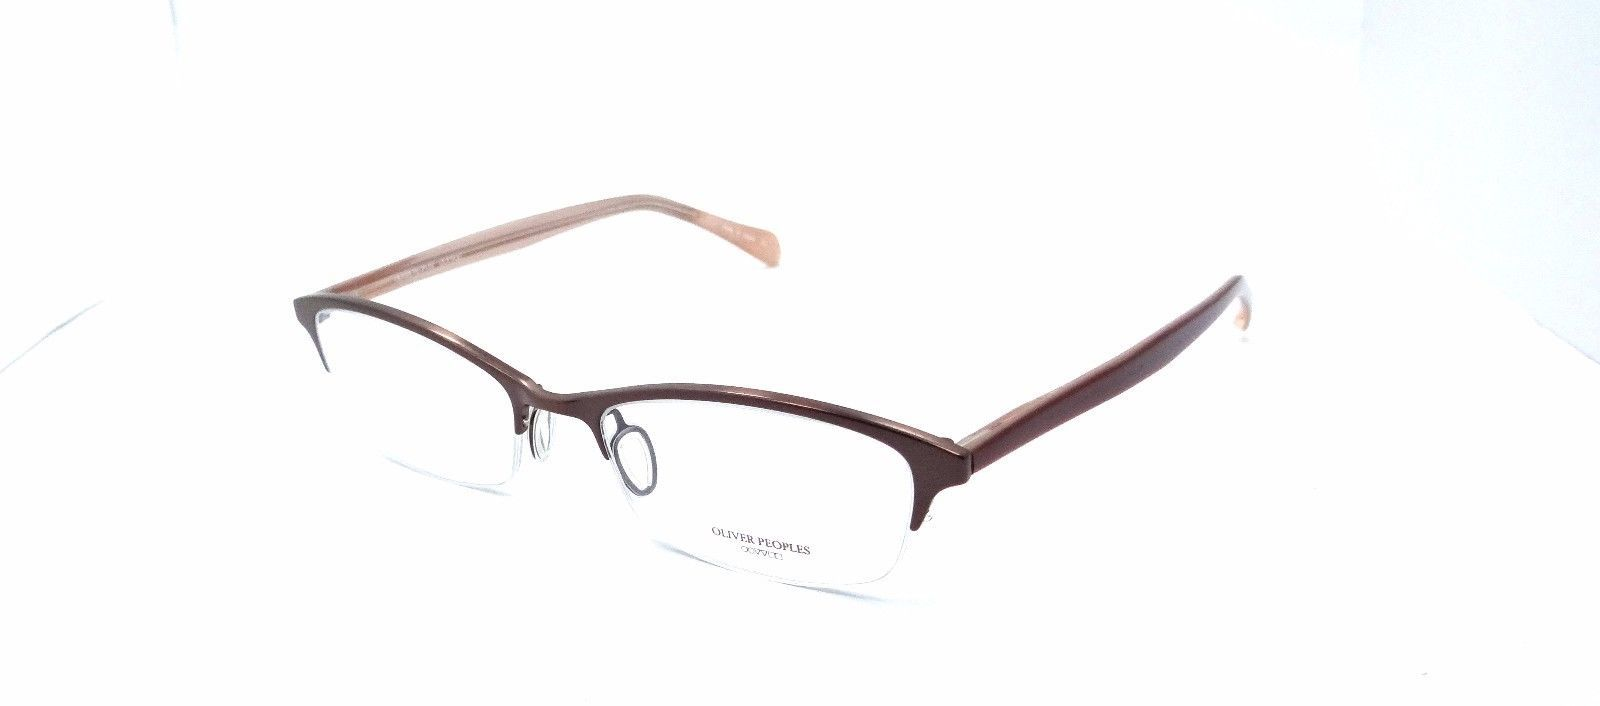 0926cc13eff Oliver Peoples Rx Eyeglasses Frames Maryse and 50 similar items. 57